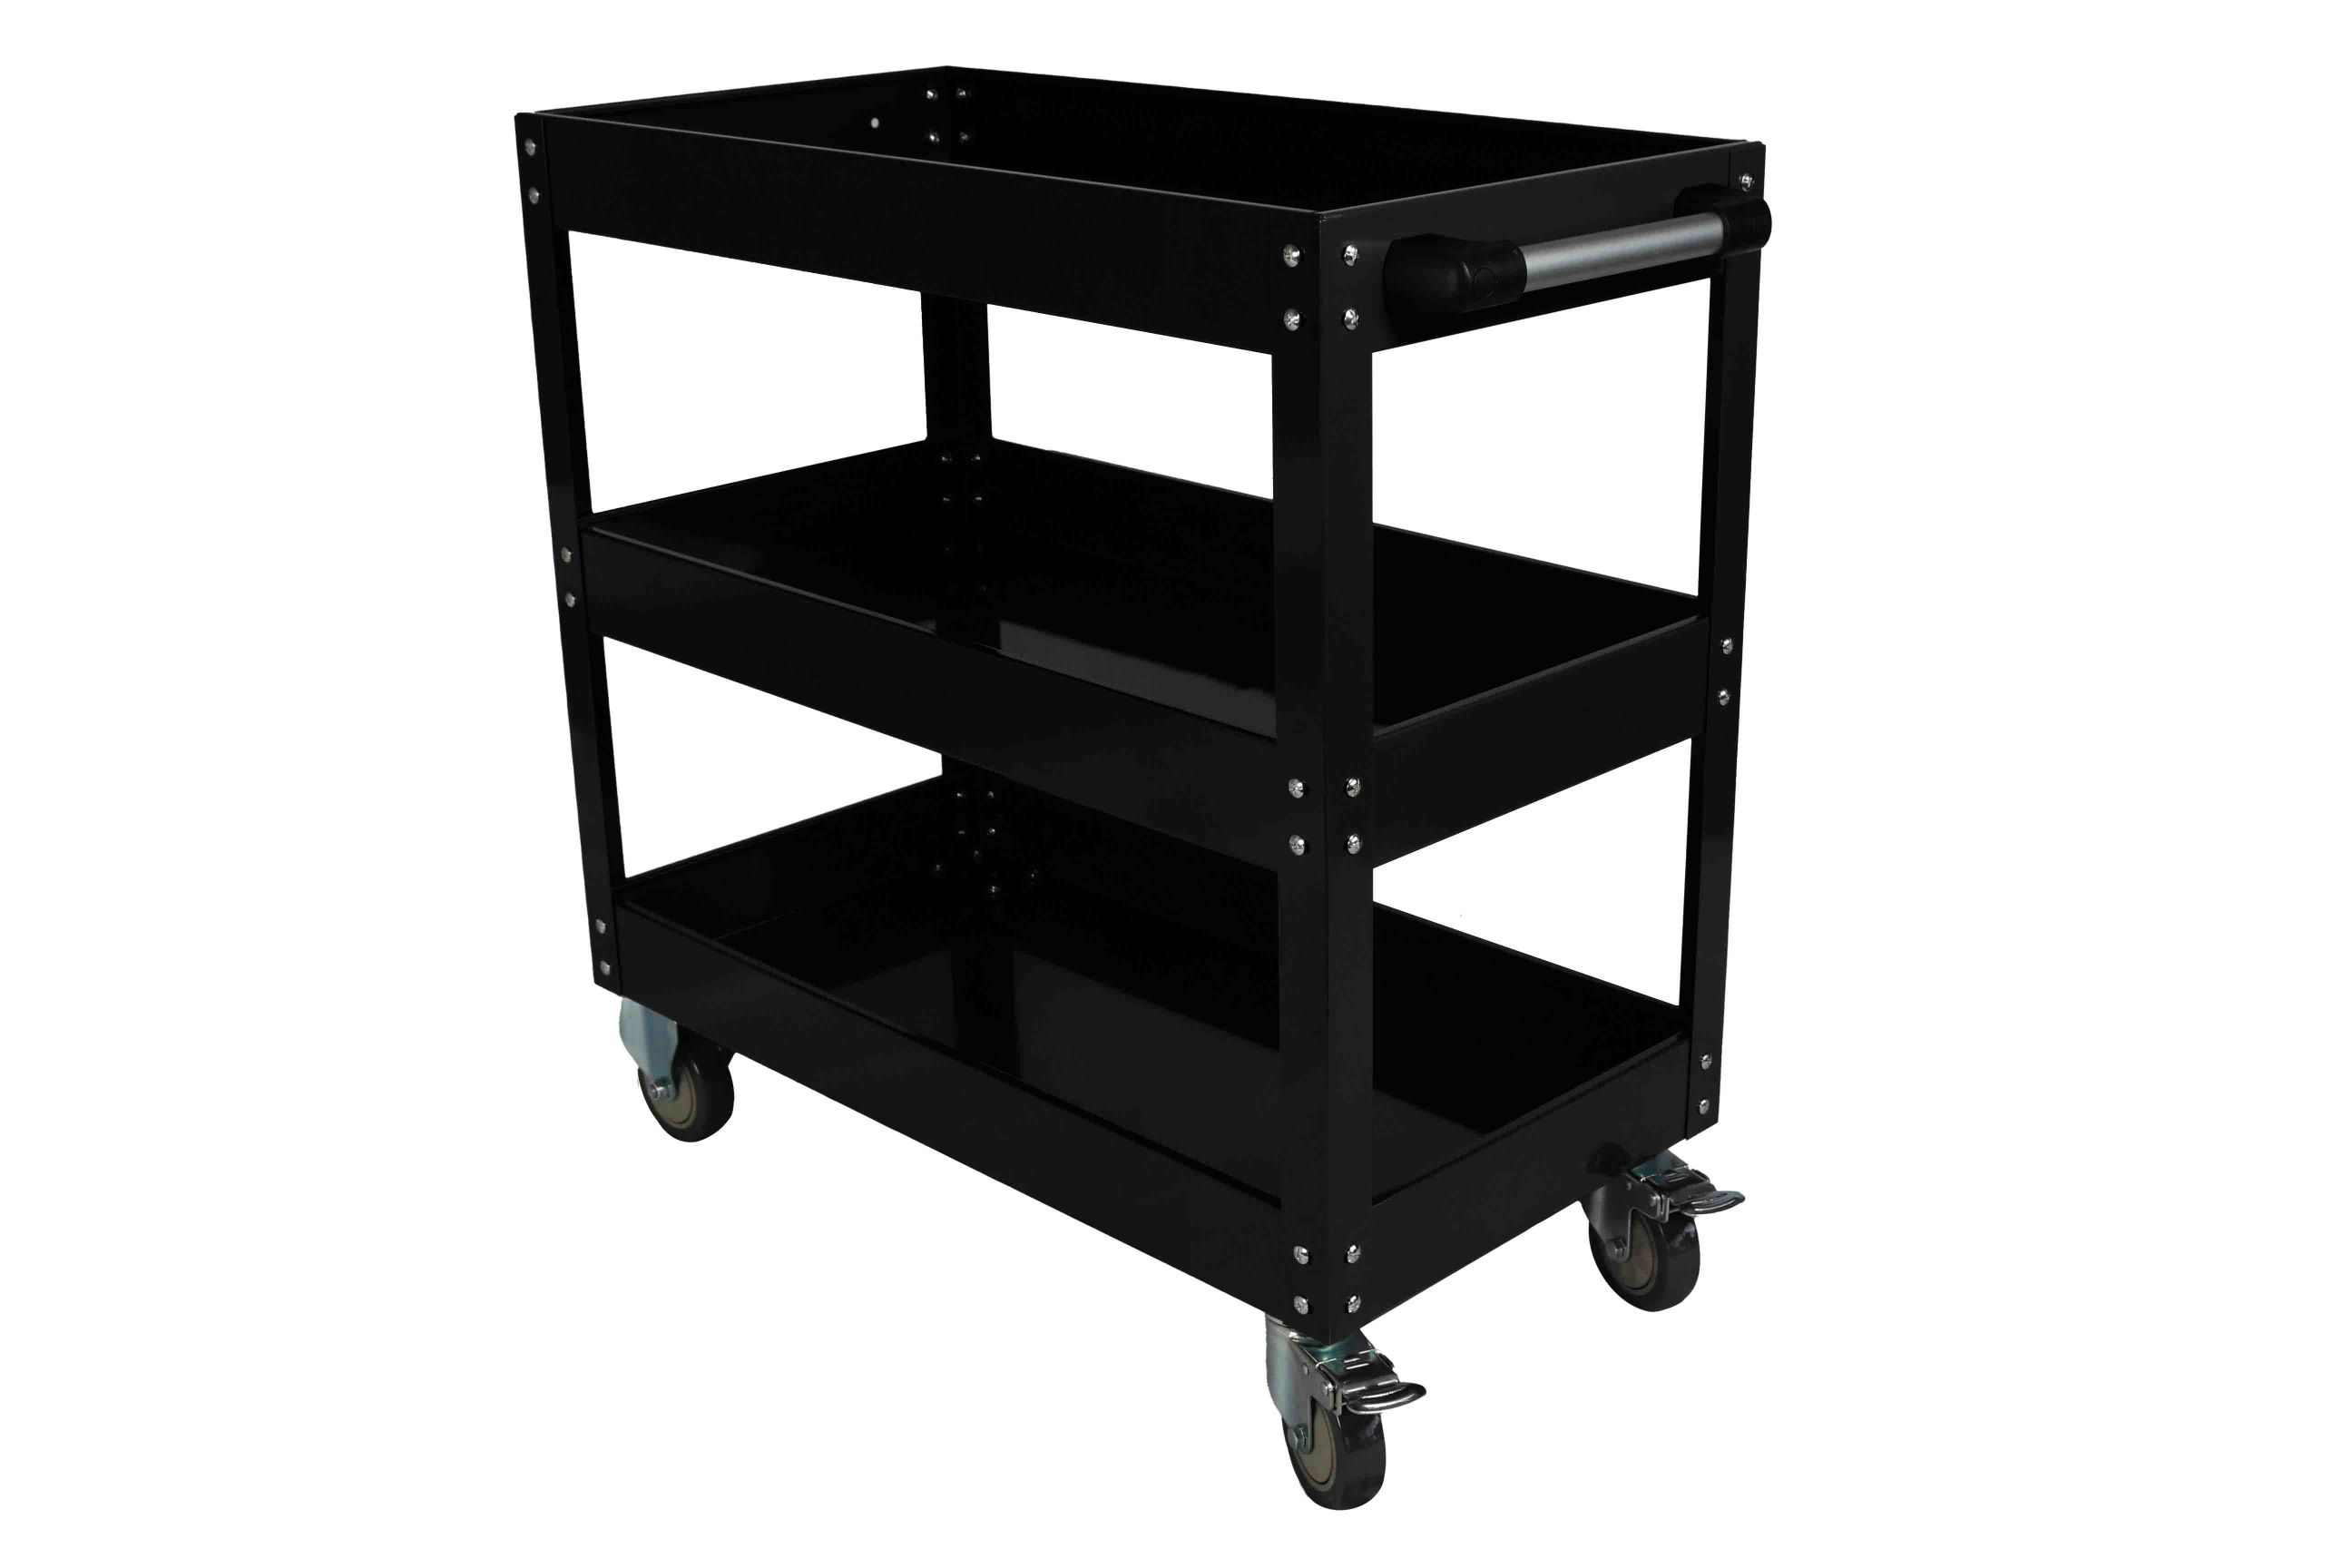 New ESSupplier Bigger & Wider Tool Trolley Cart Storage  Black